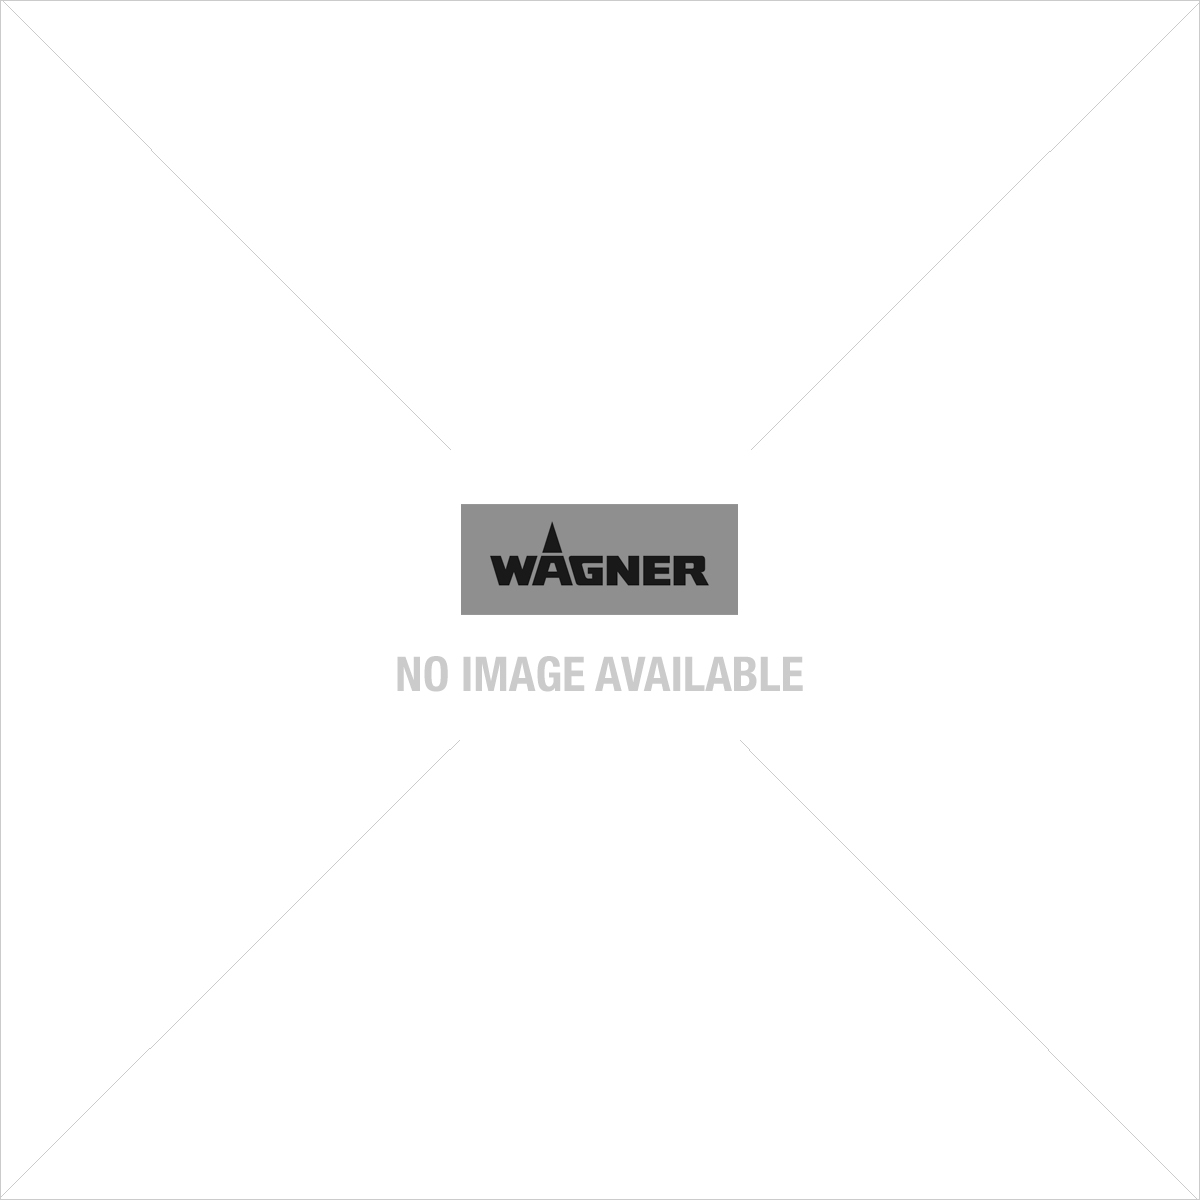 Wagner project 117 airless verfpomp